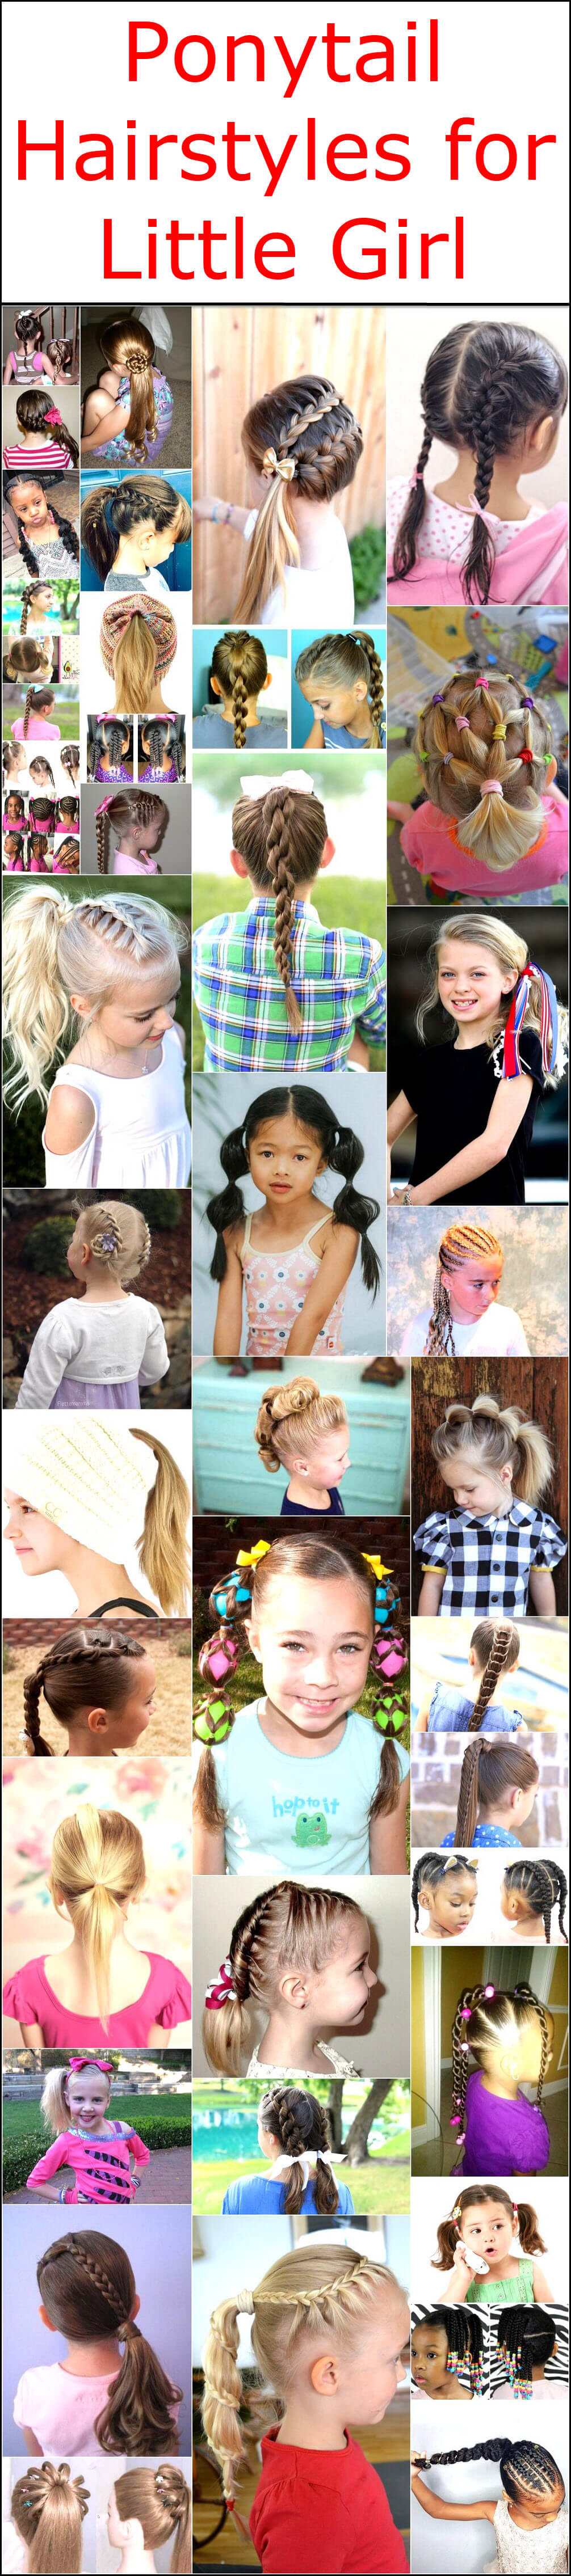 Show Me Hairstyles For Little Girls